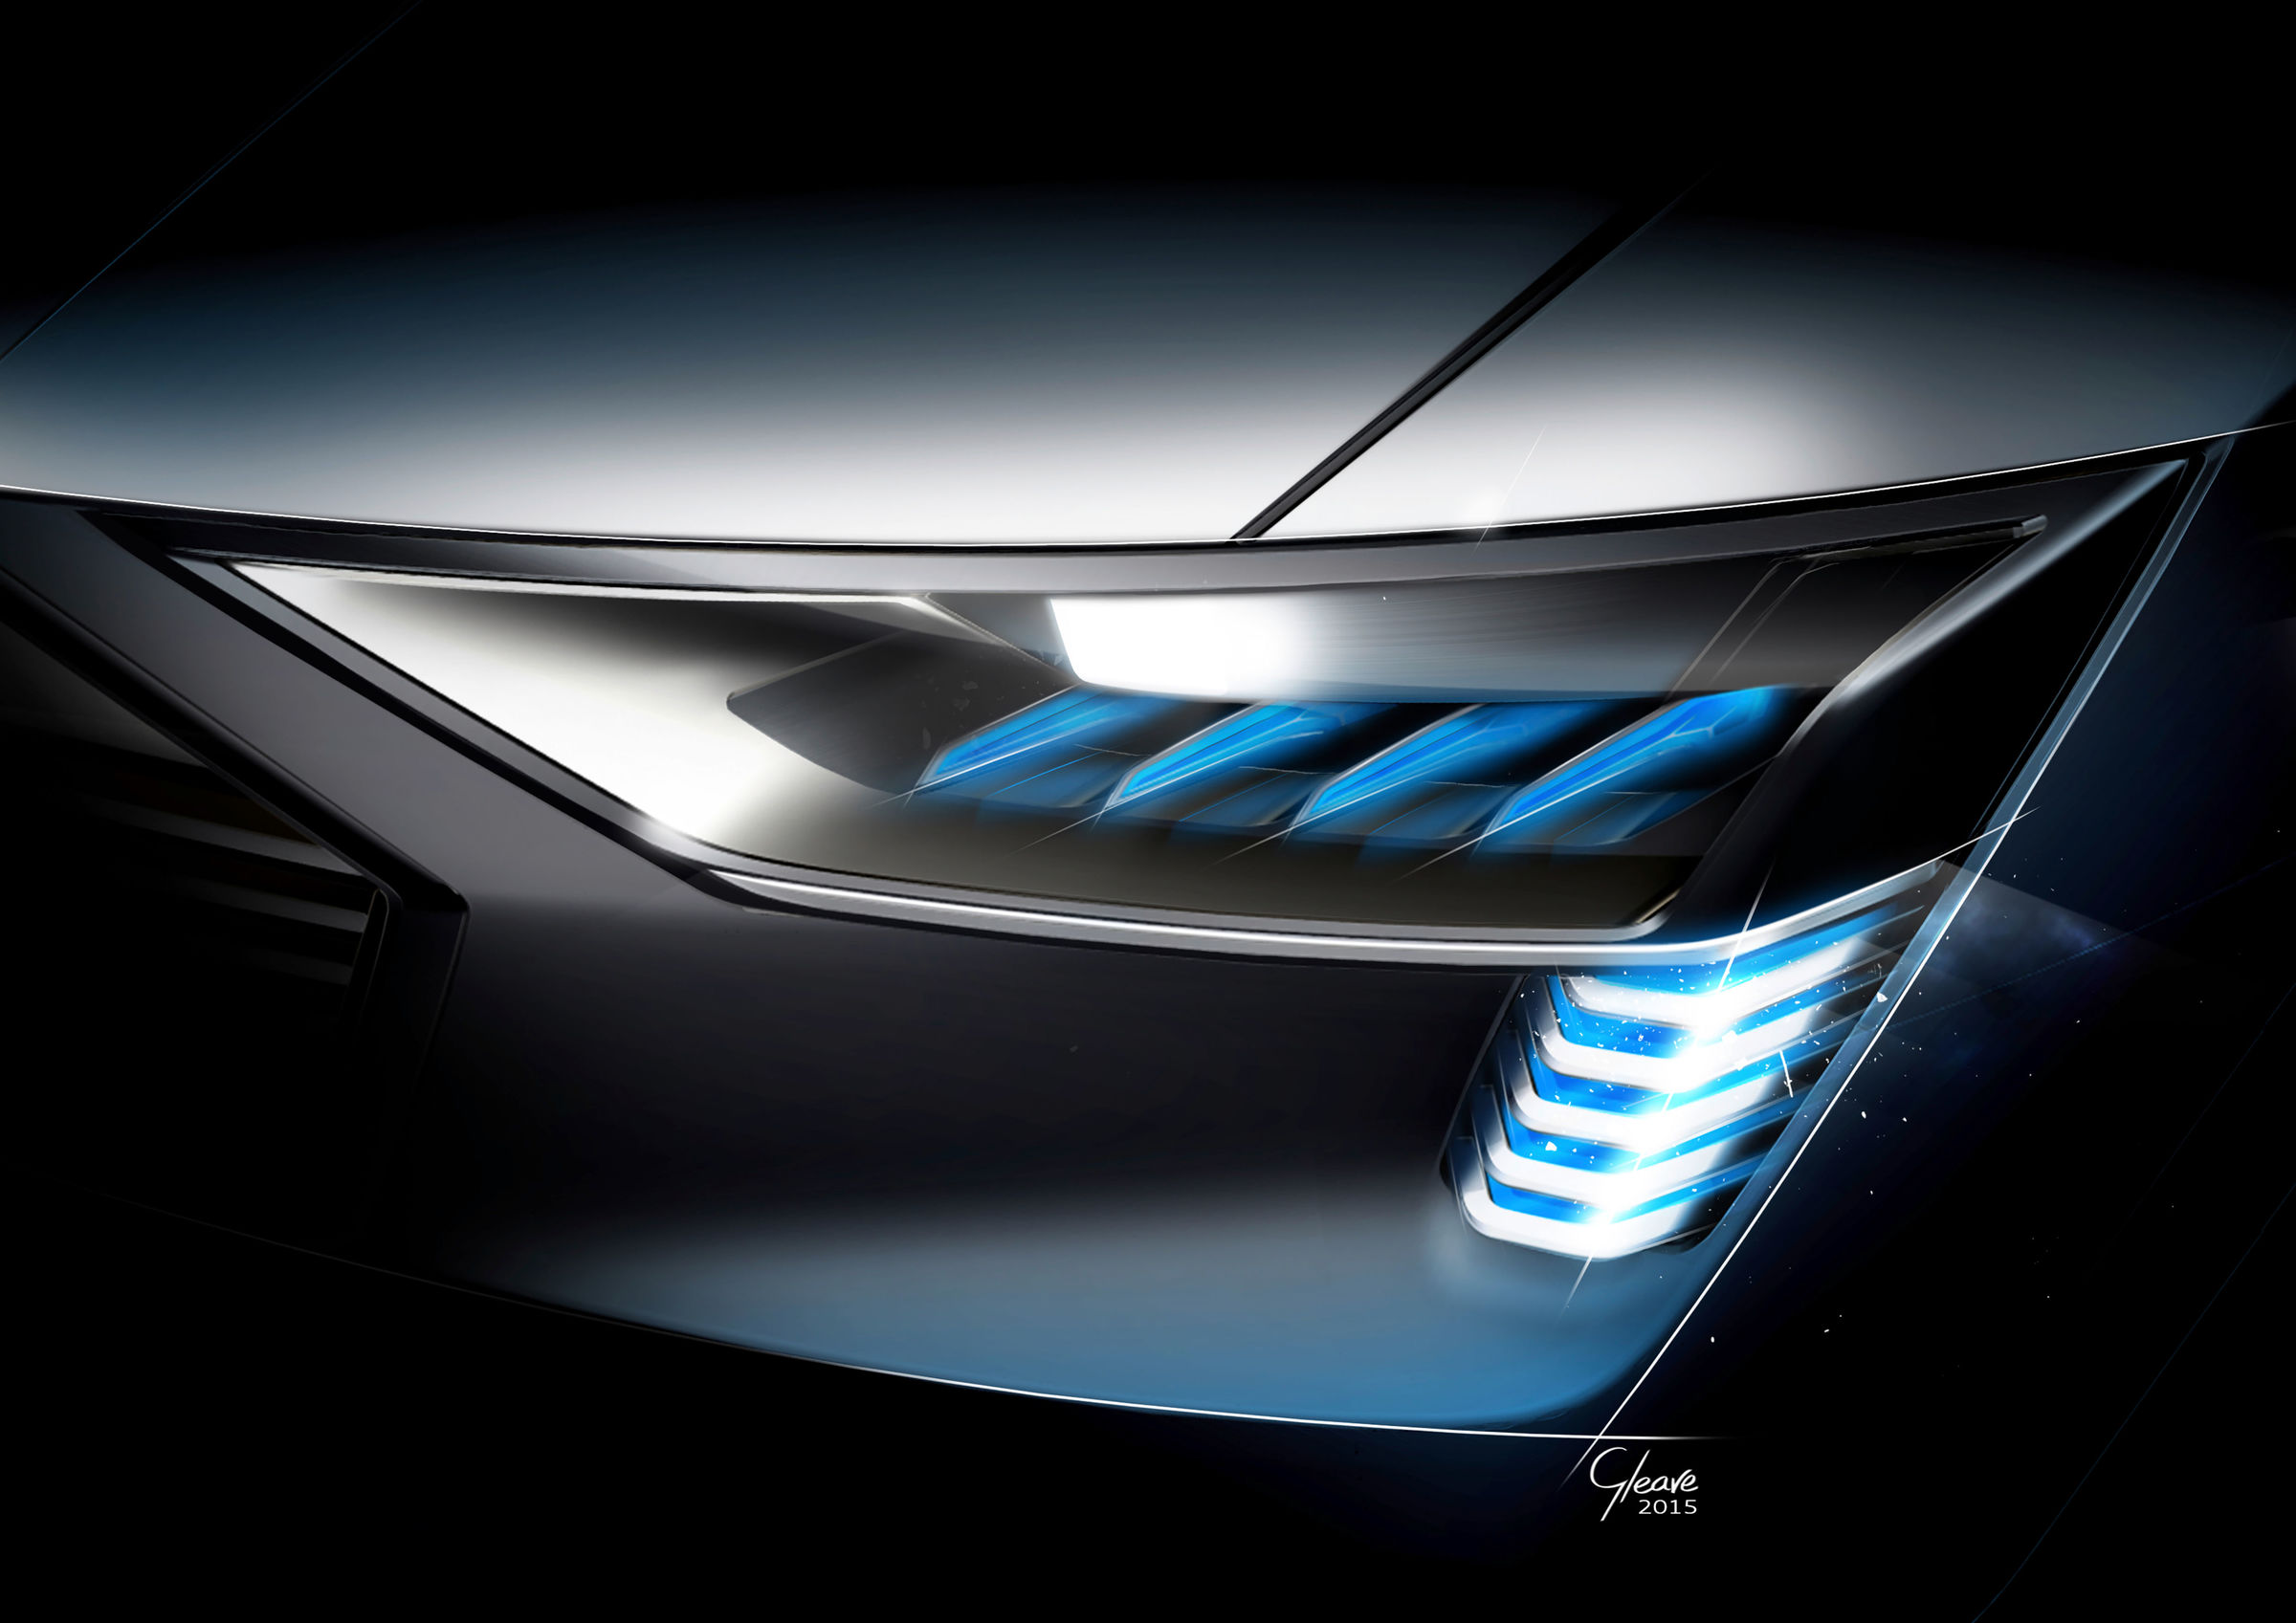 E Tron Light Signature With New Oled Technology The Front End Audi Mediacenter